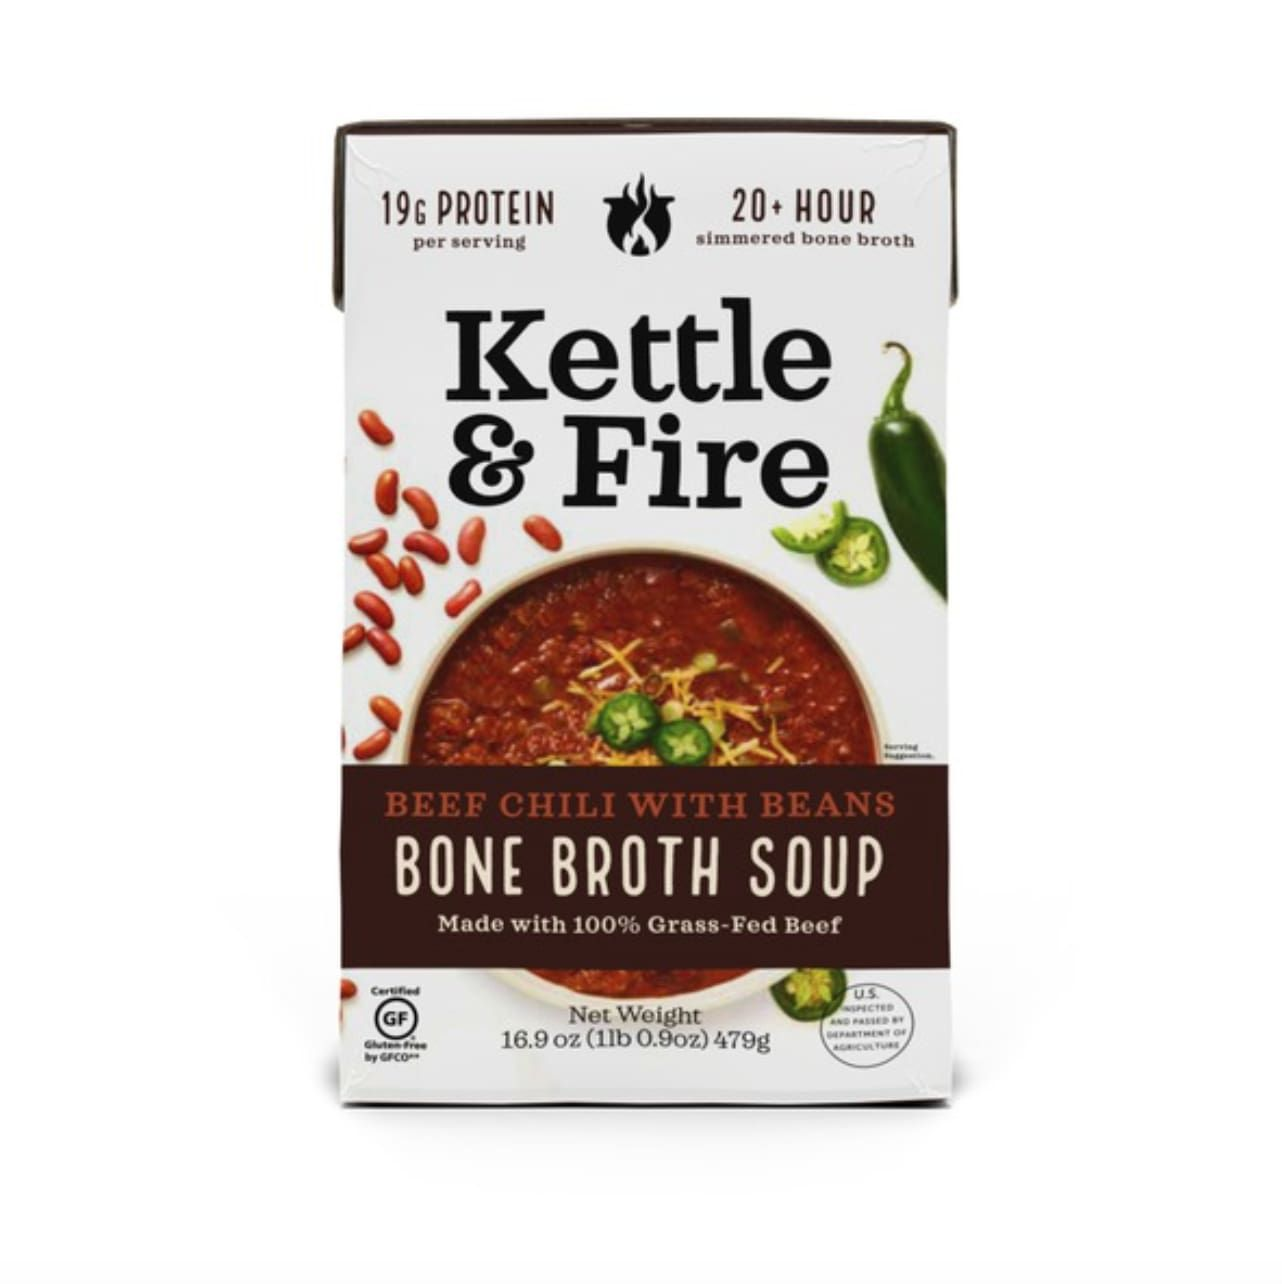 kettle-and-fire-bone-broth-soup